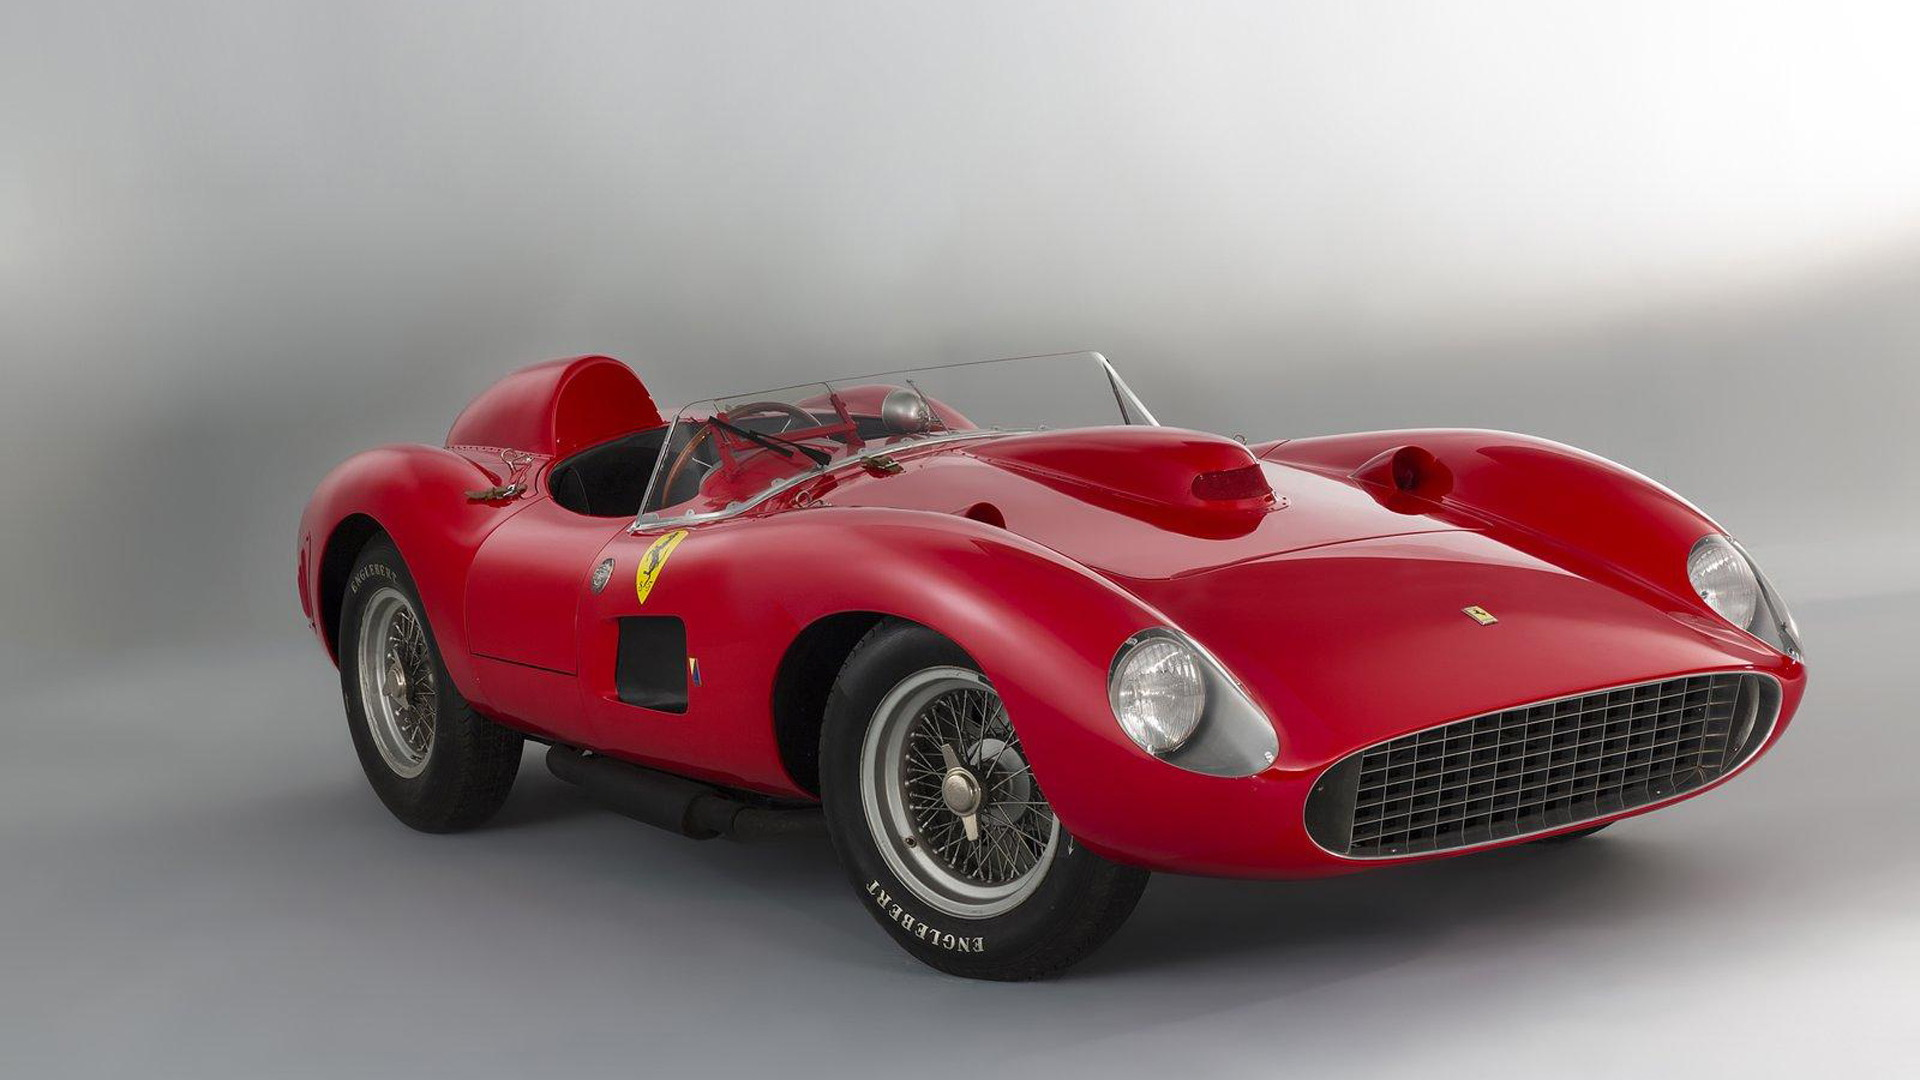 1957 Ferrari 335 S chassis number 0674